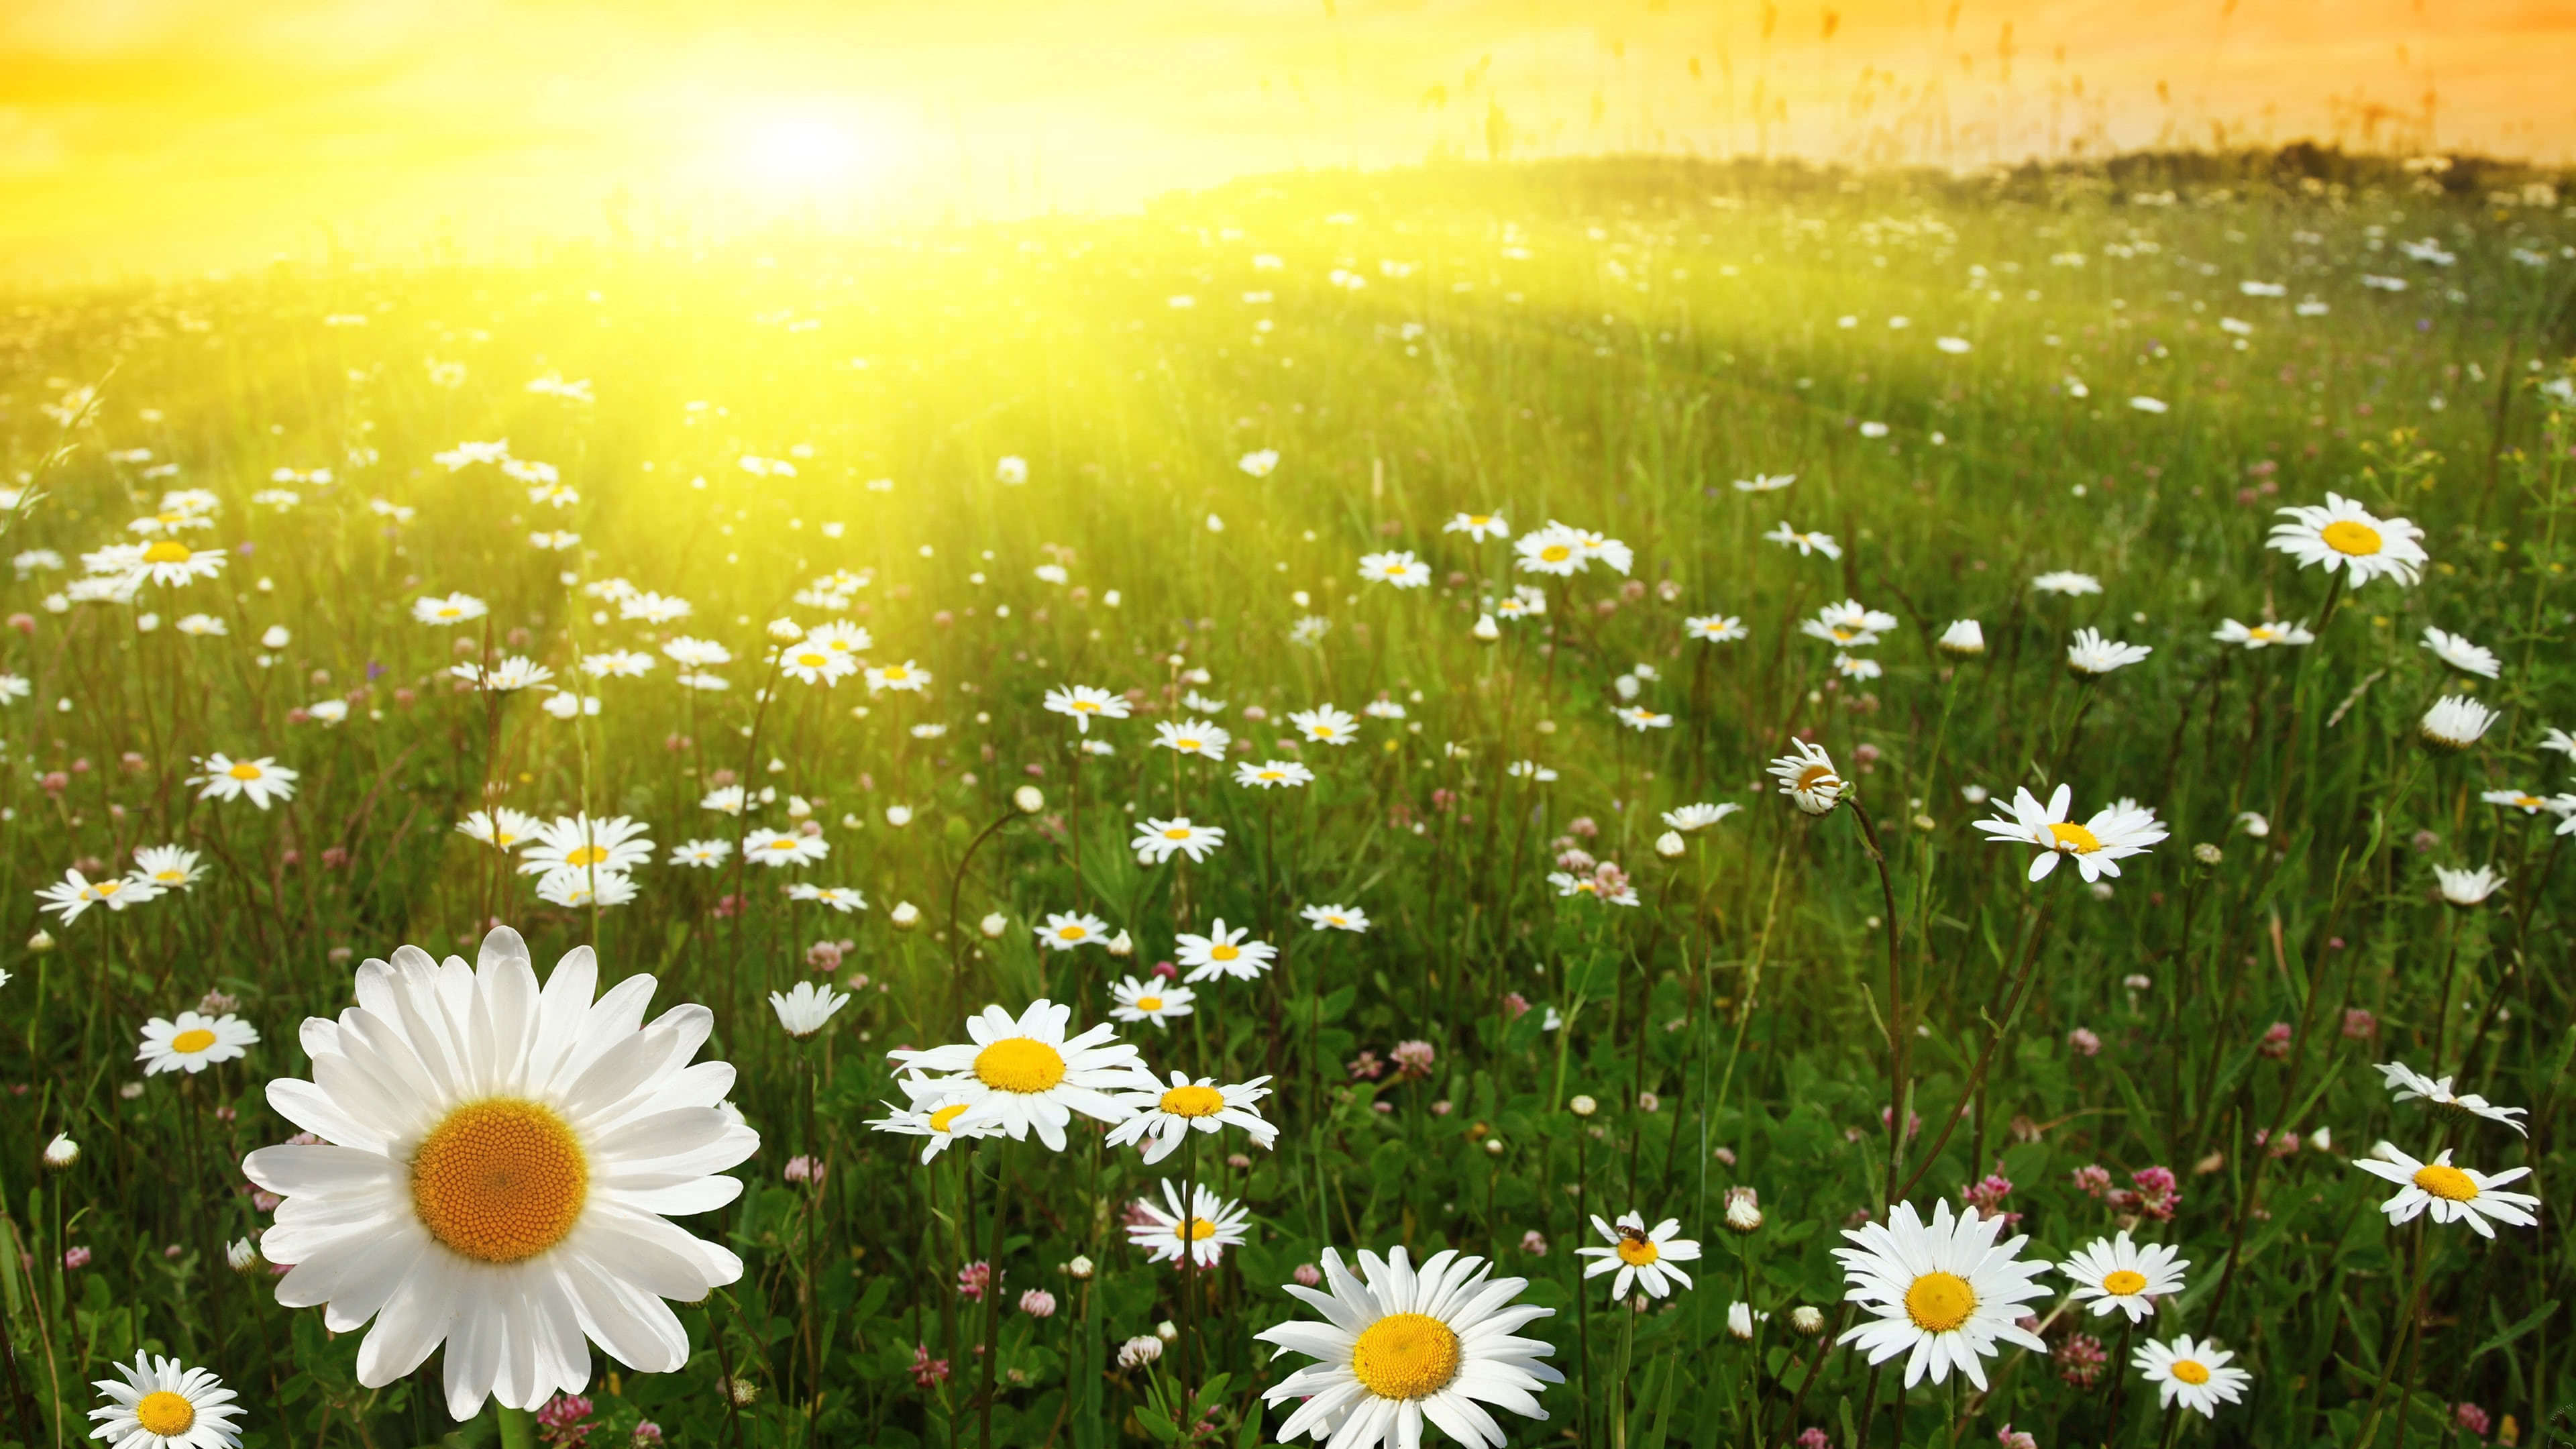 daisies sunny field uhd 4k wallpaper